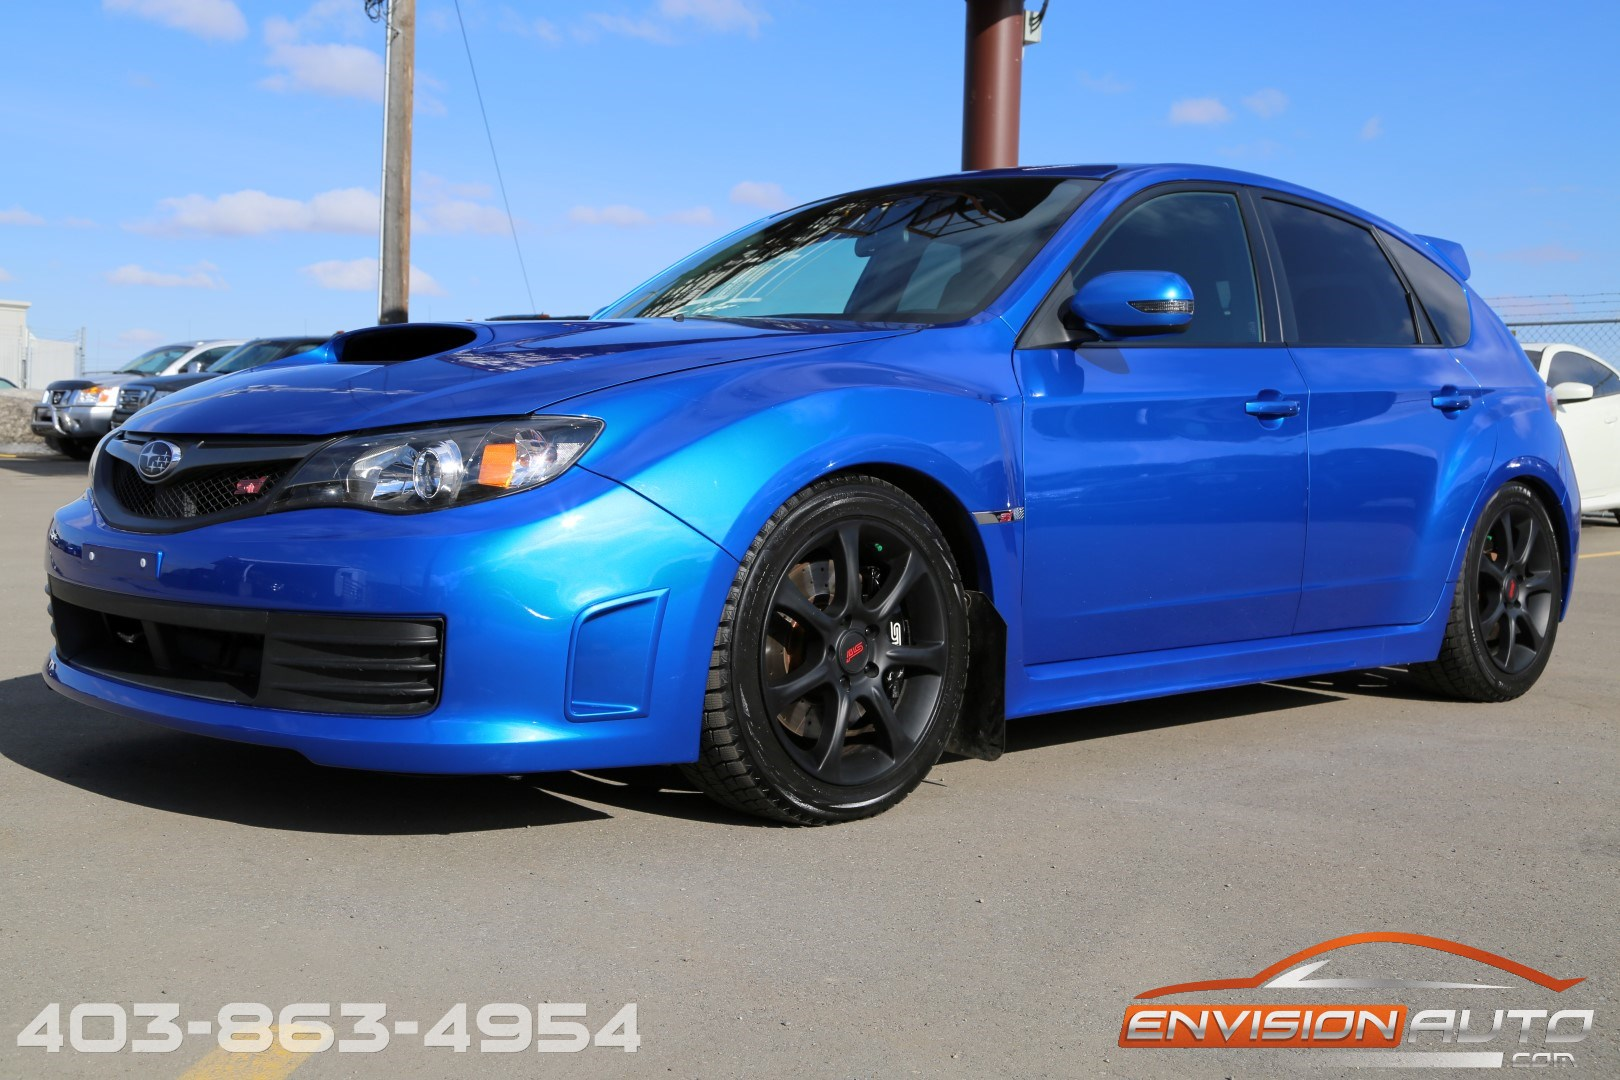 2010 Subaru Impreza Wrx Sti Custom Built Engine Only